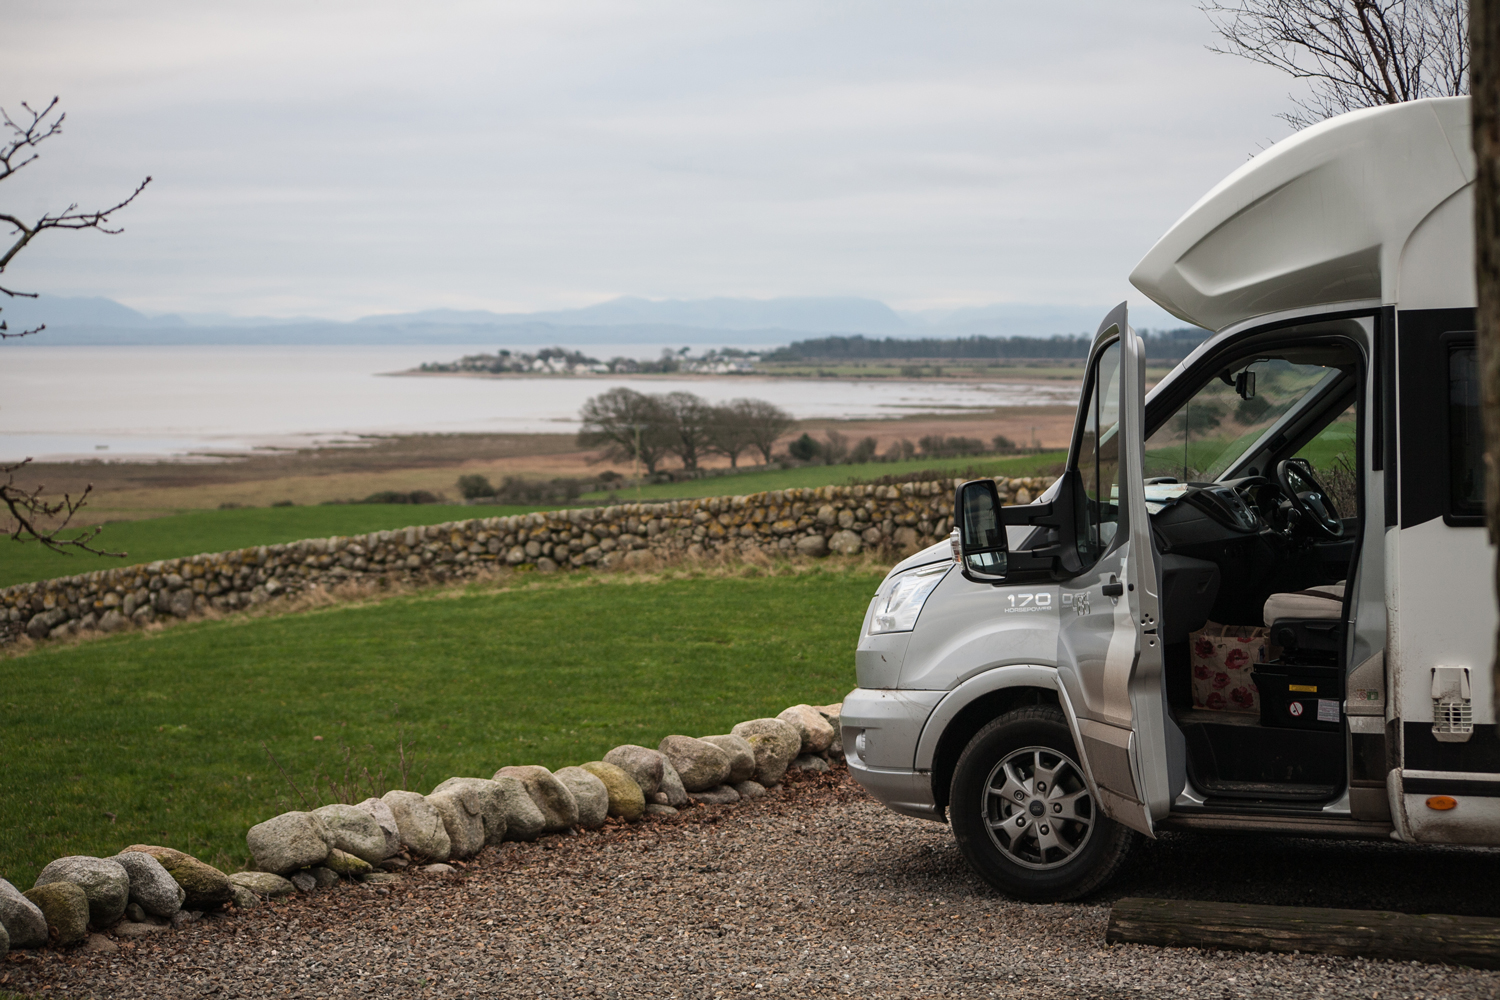 A motorhome with its door open parked next to a large lake